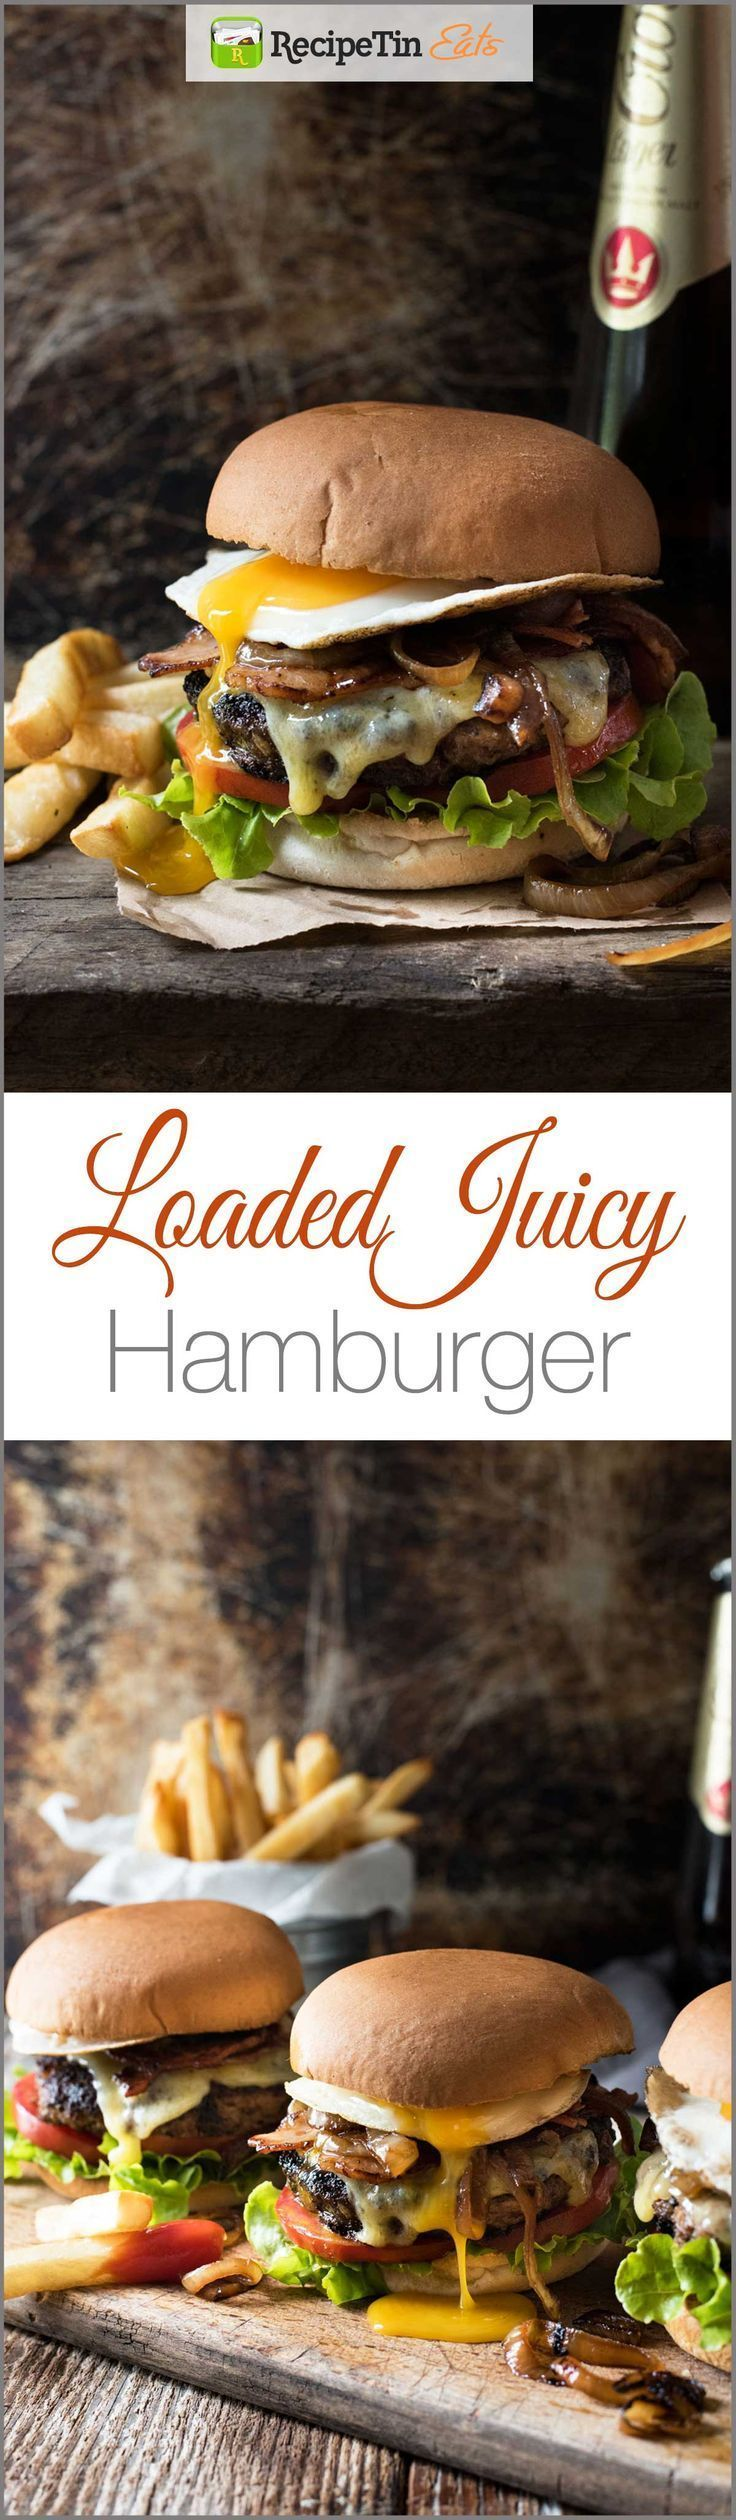 Loaded Beef Hamburgers - Juicy, towering, EASY, it's for midweek or your next grill out!Loaded Beef Hamburgers - Juicy, towering, EASY, it's for midweek or your next grill out!